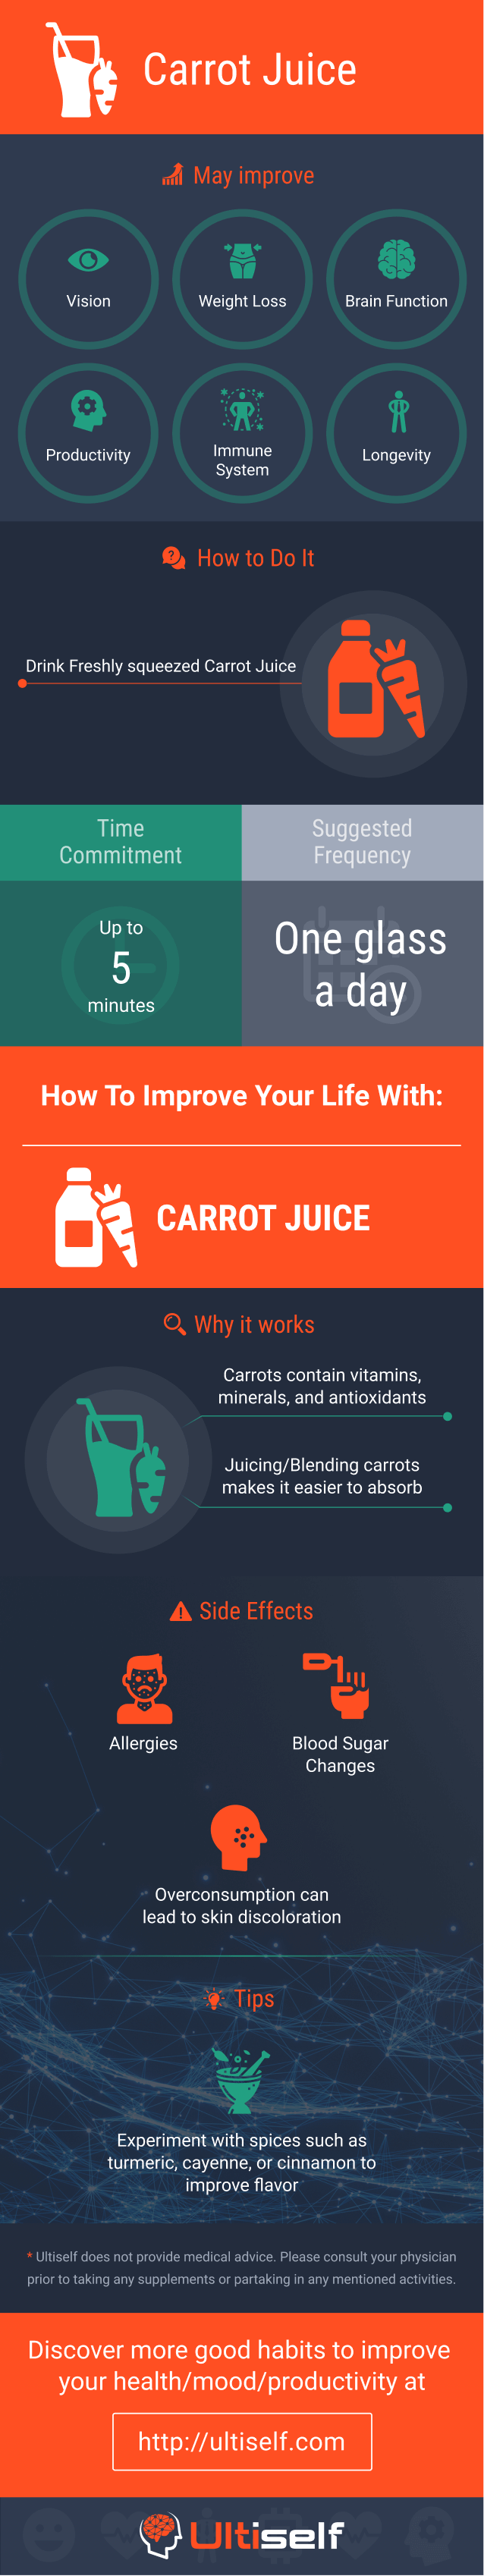 Carrot Juice infographic